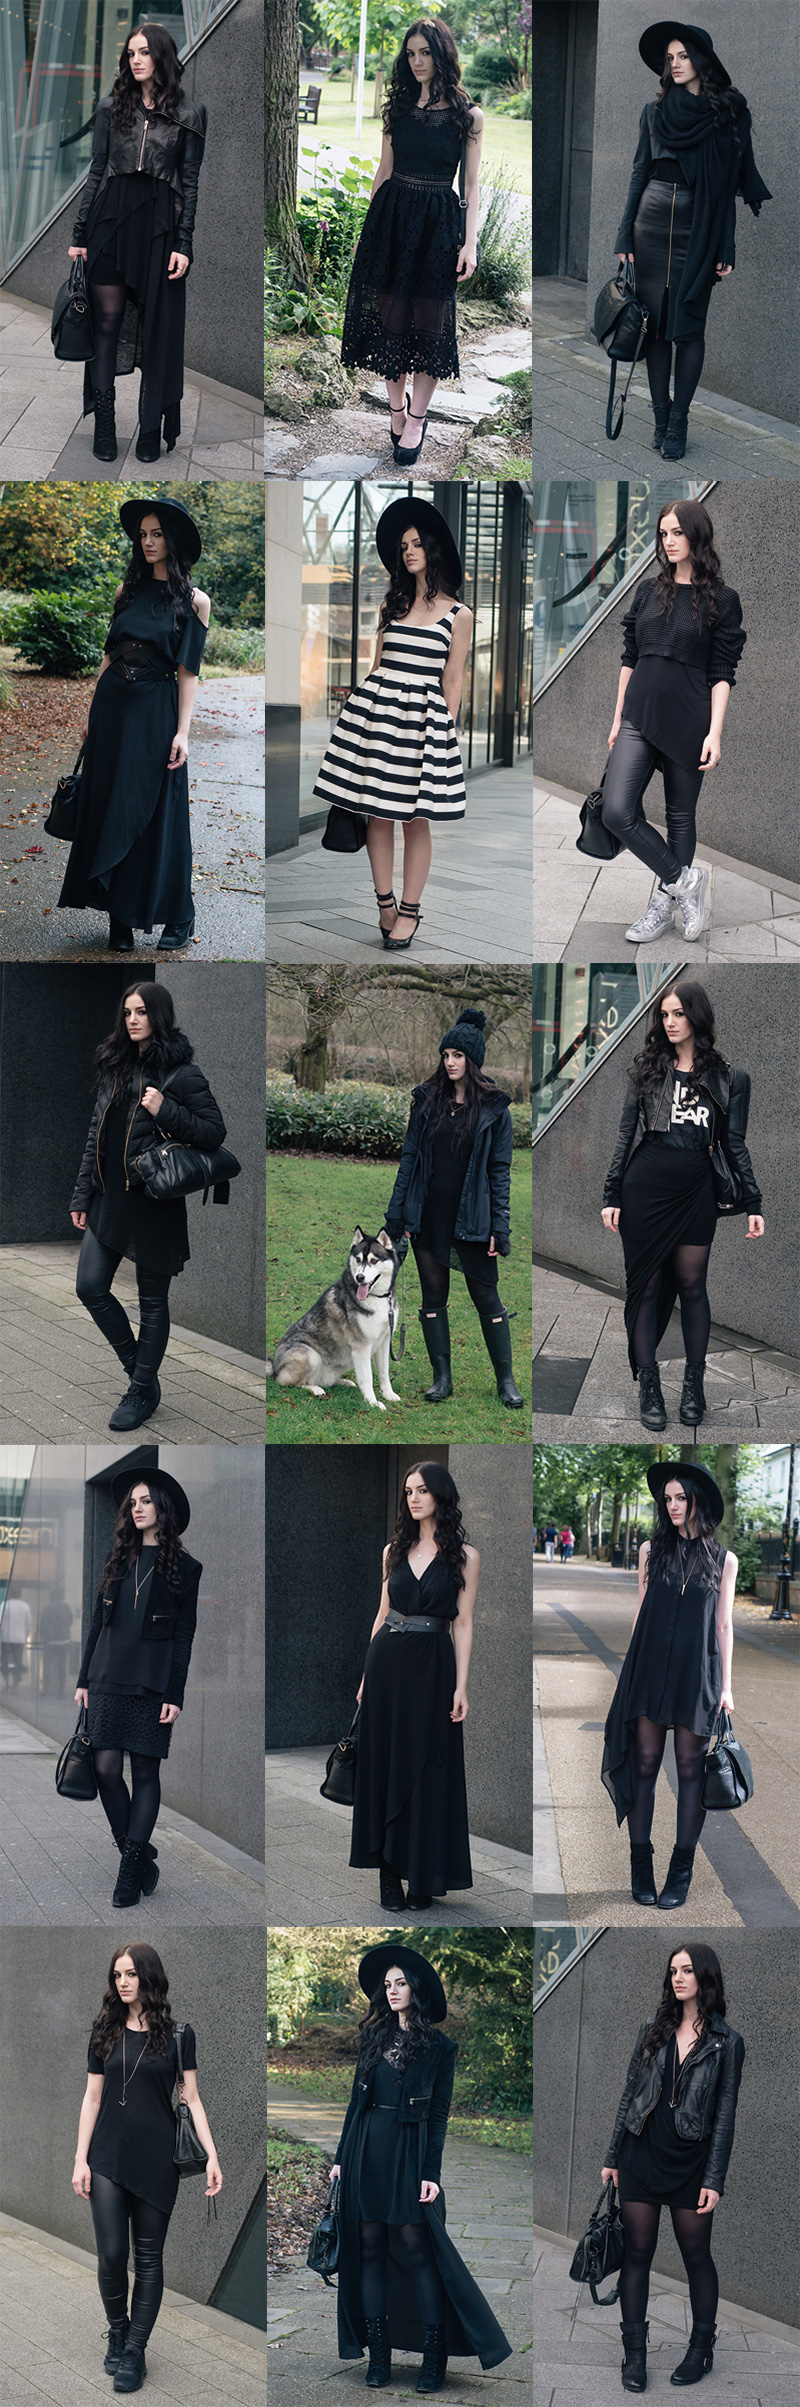 Fashion blogger Stephanie of FAIIINT all black everything dark street style goth best outfits of 2016 compilation.